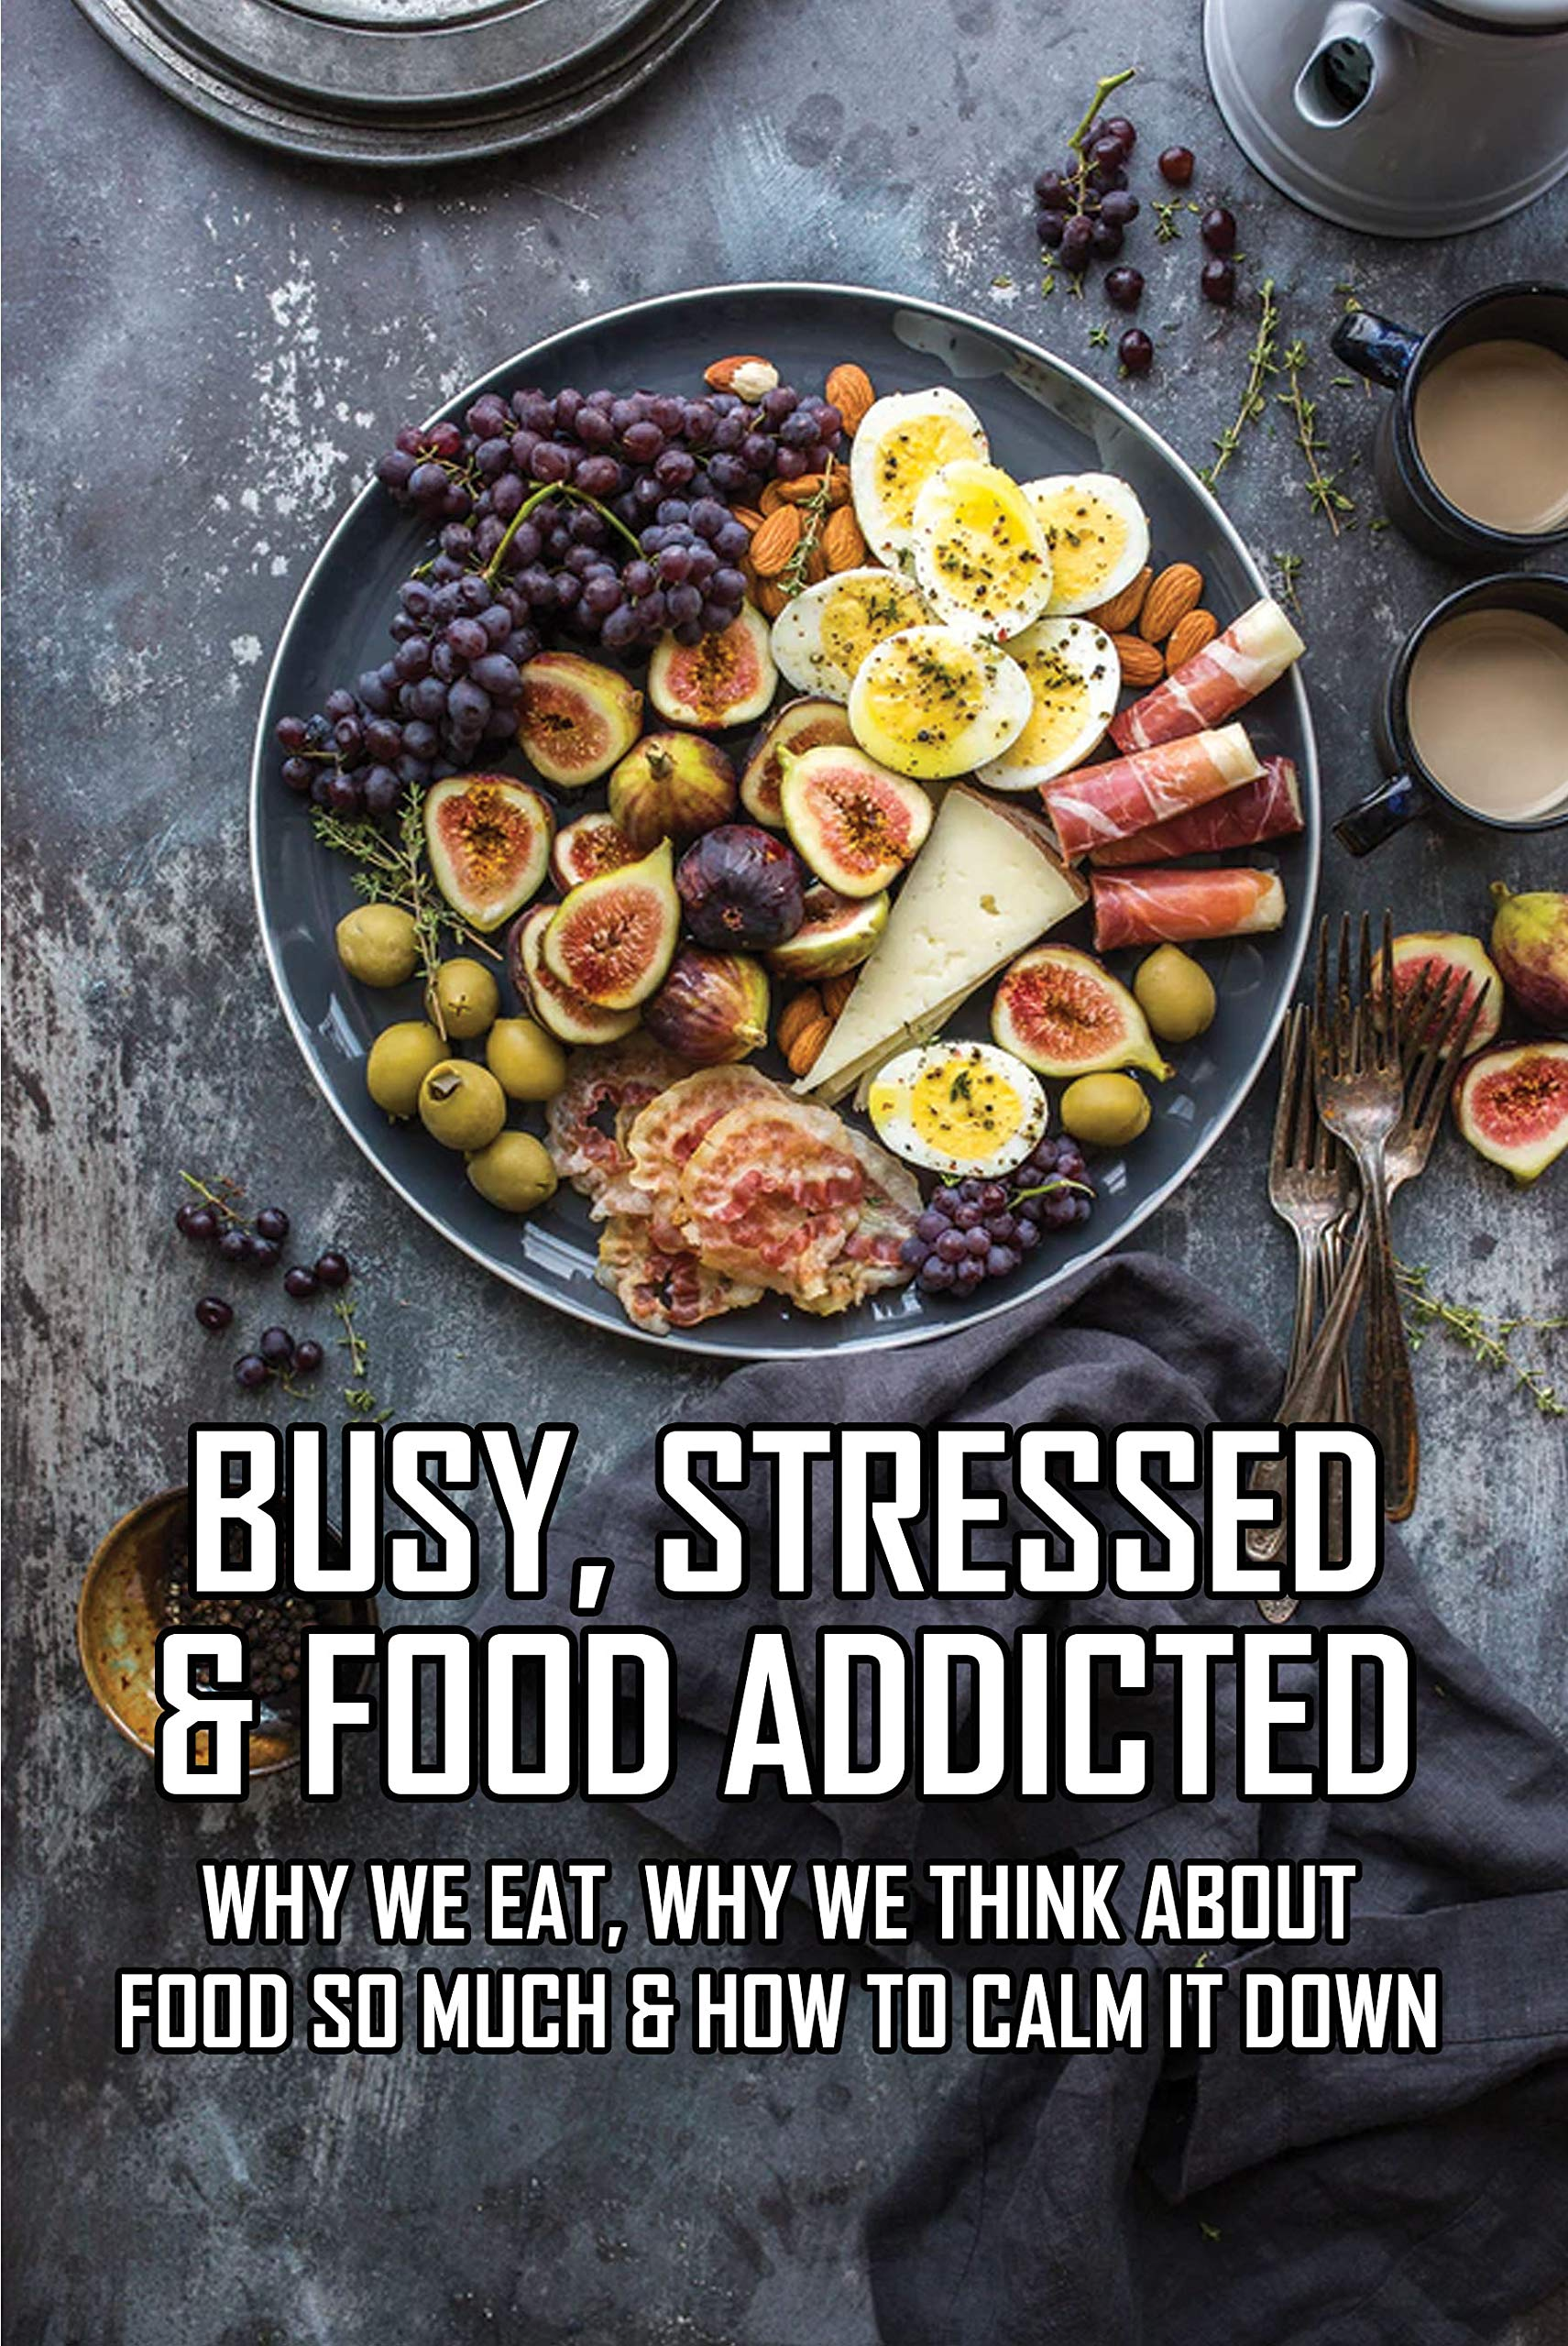 Busy, Stressed & Food Addicted: Why We Eat, Why We Think About Food So Much & How To Calm It Down: Food Addiction Books